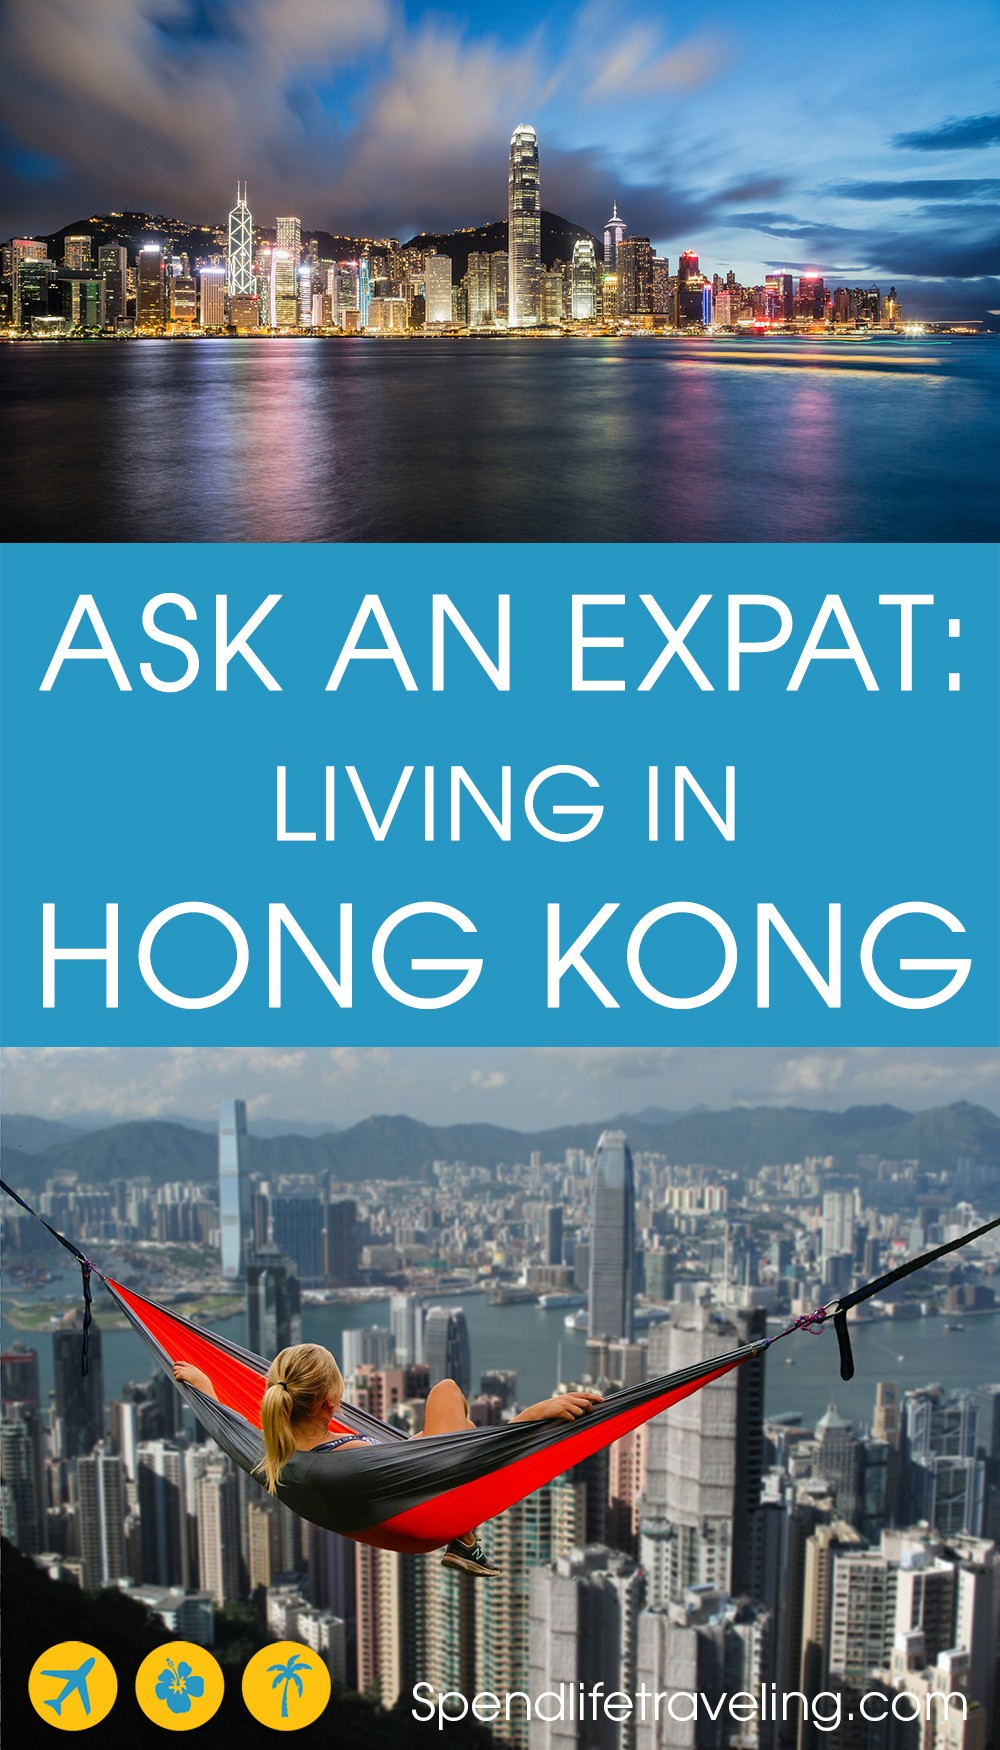 Interview about moving to and living in Hong Kong as an expat